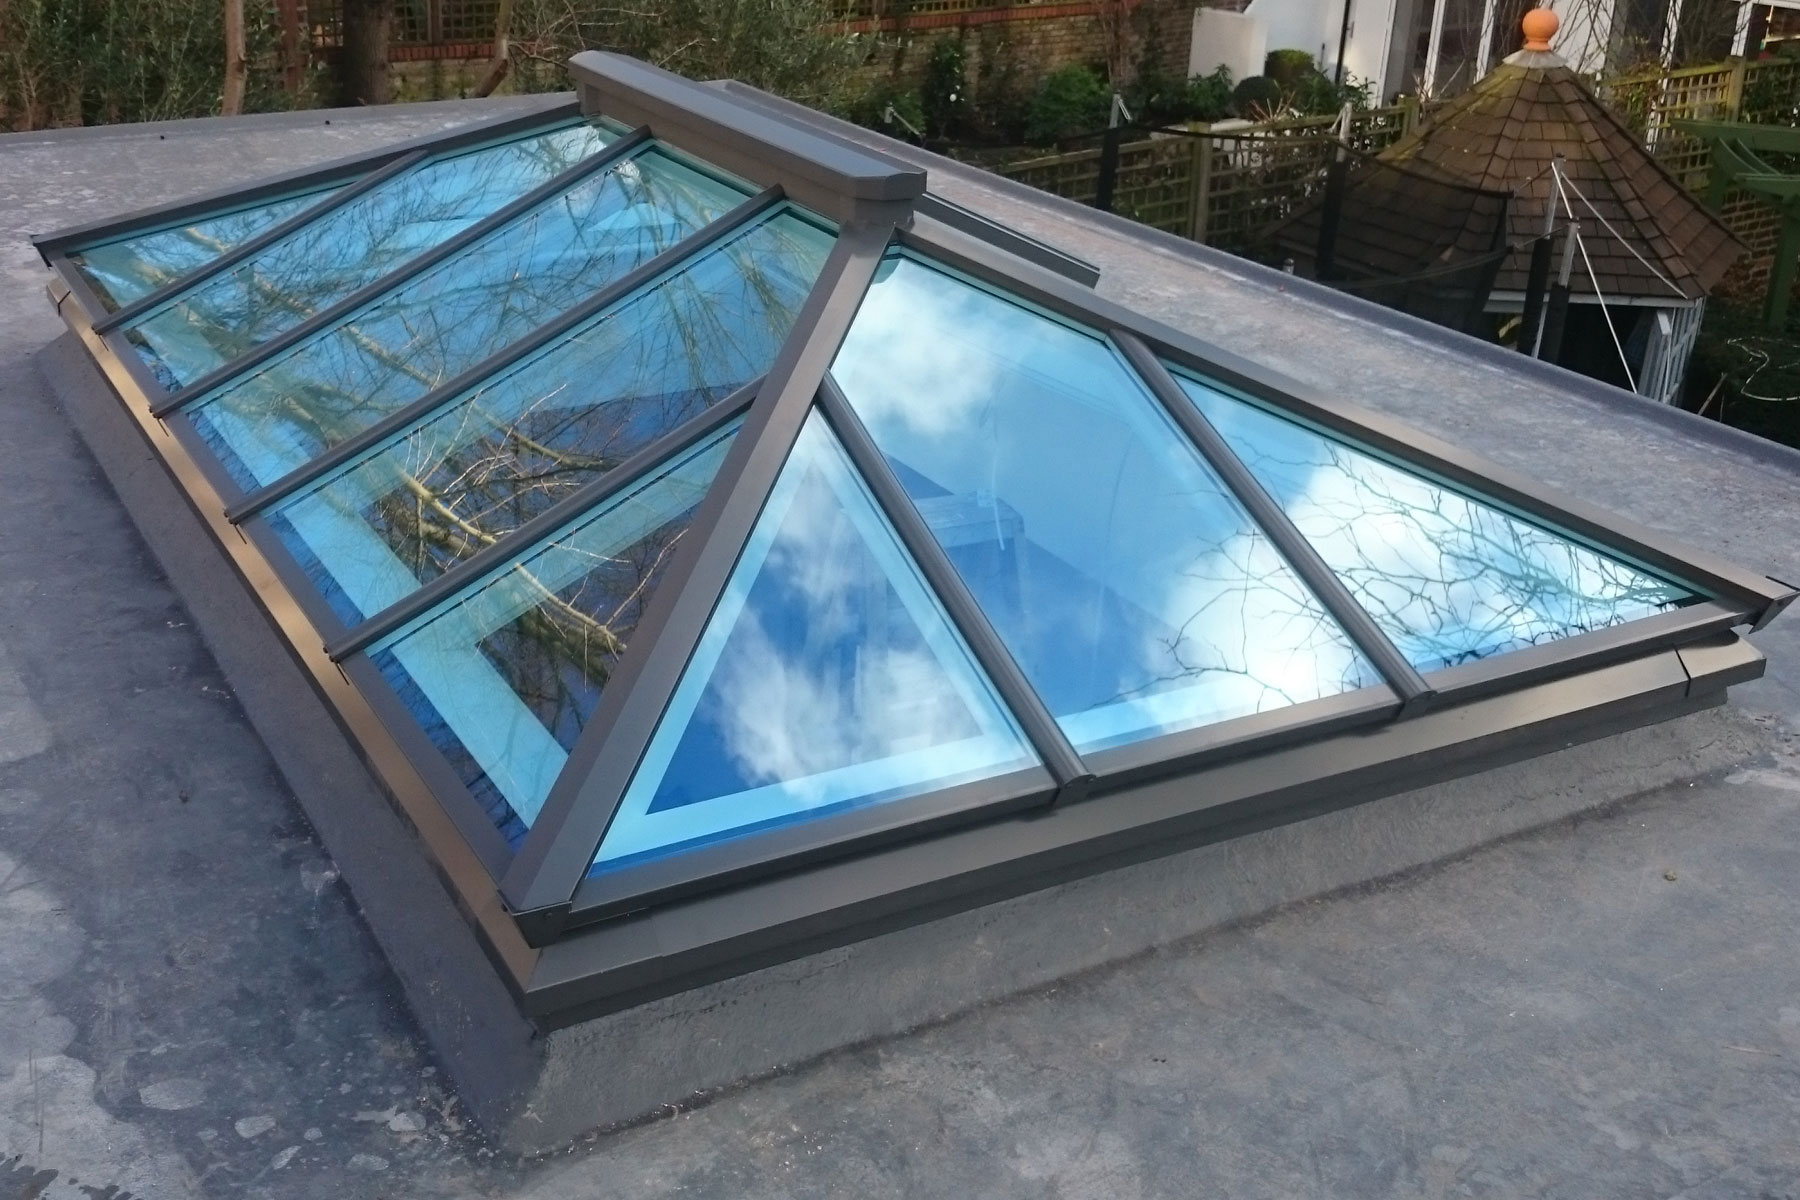 Roof lantern measuring 2750mm x 1660mm